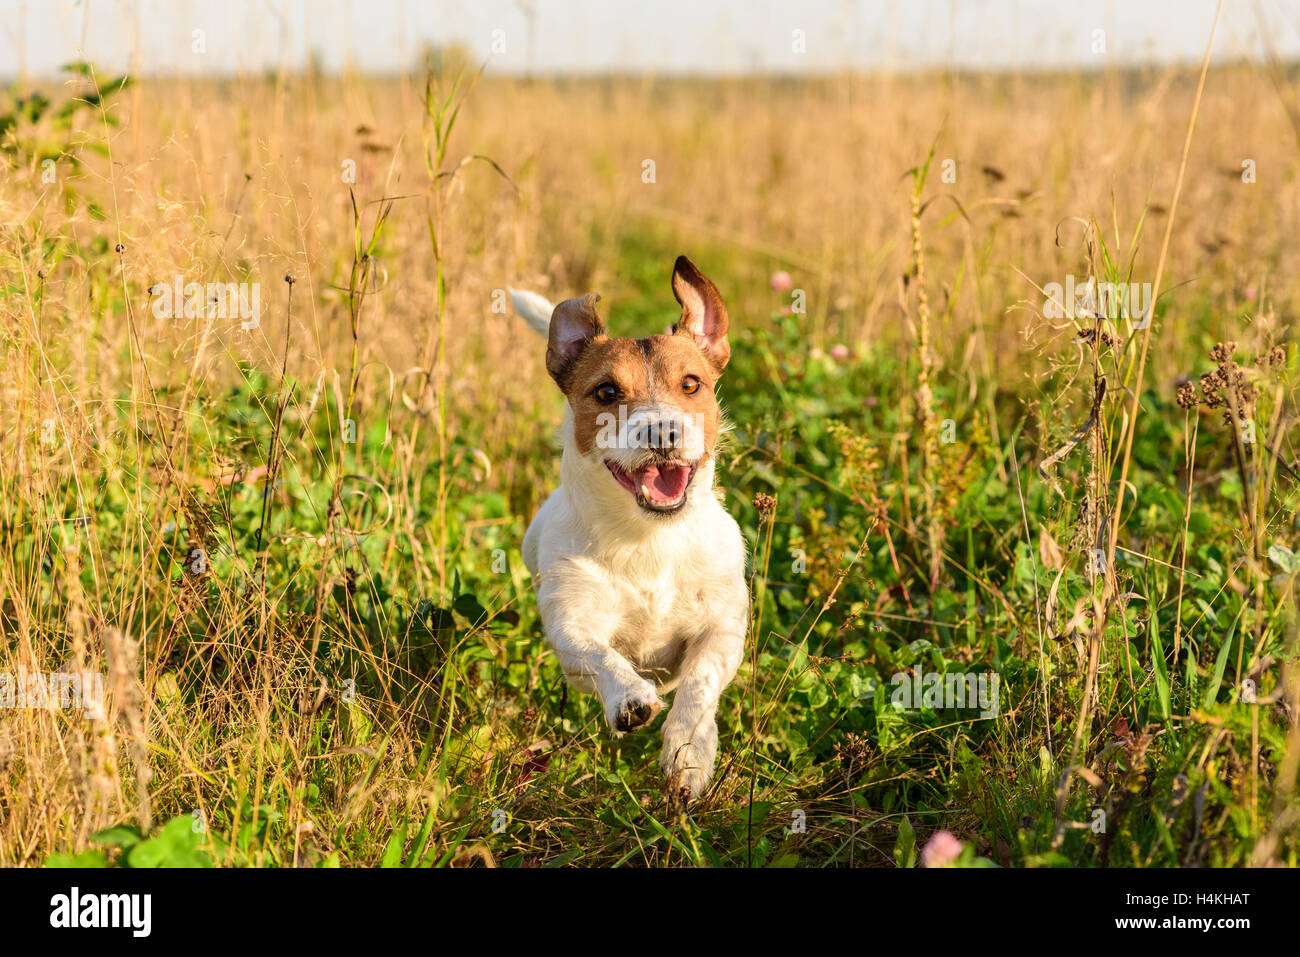 Cute Dog Running Freely At Field Stock Photo 123361920 Alamy